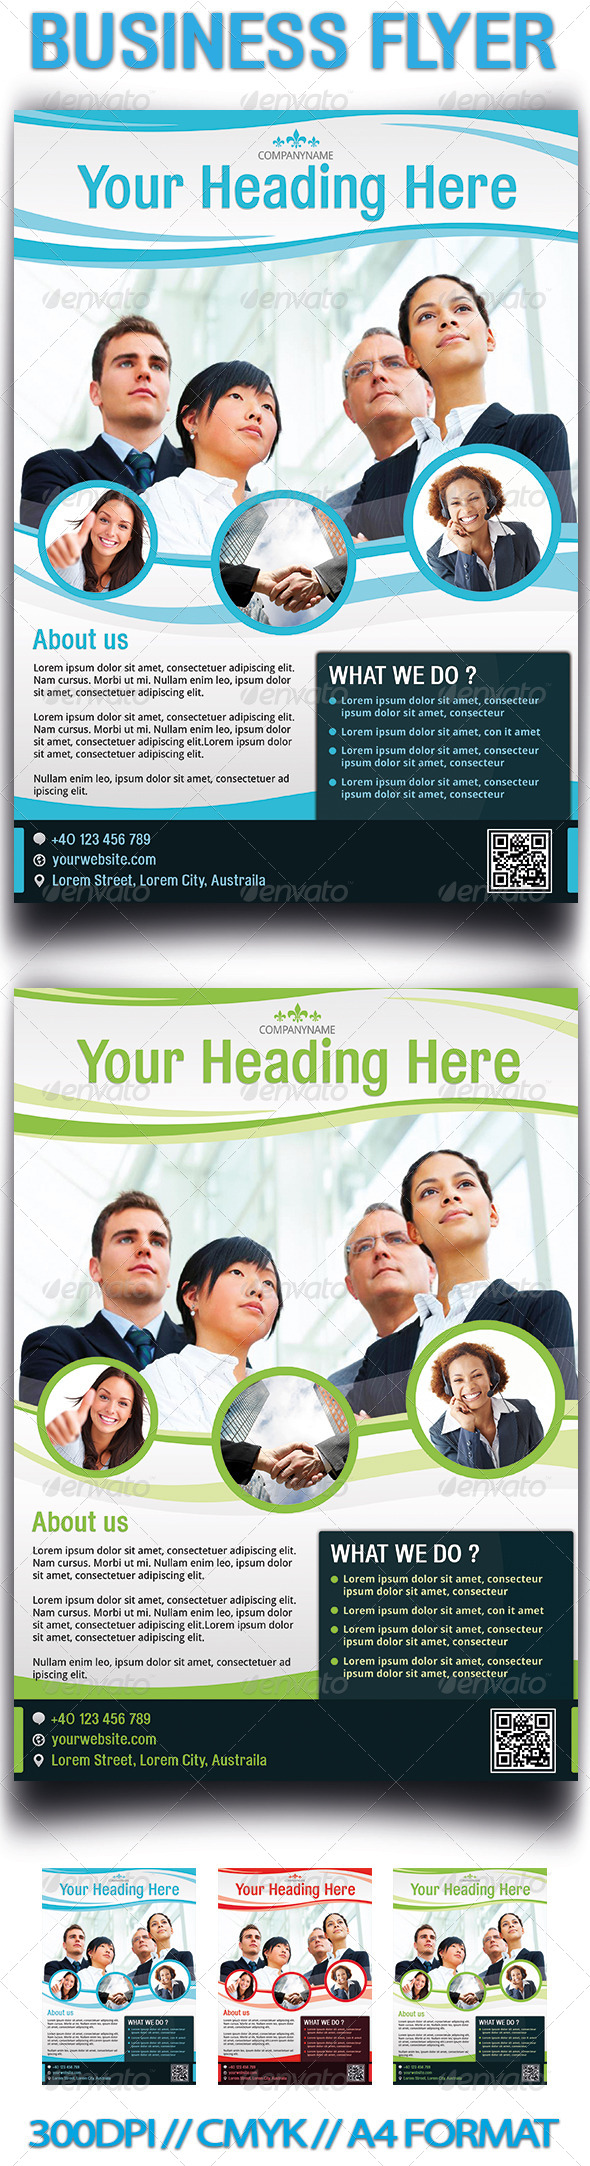 GraphicRiver Business Flyer 3956641